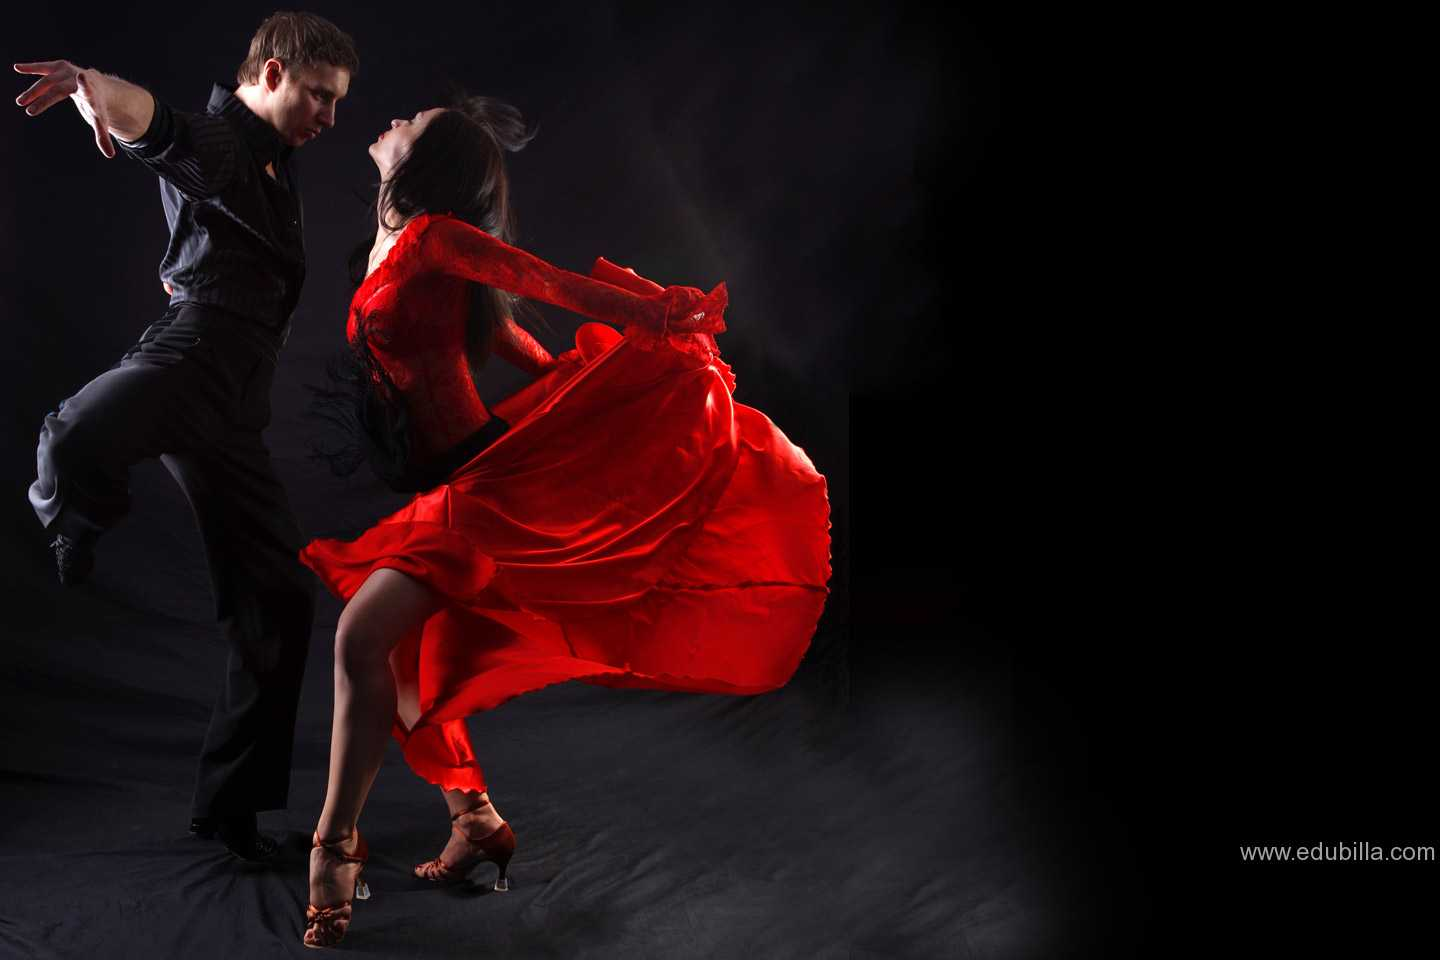 Dancing On The Square presented by USA Dance ...